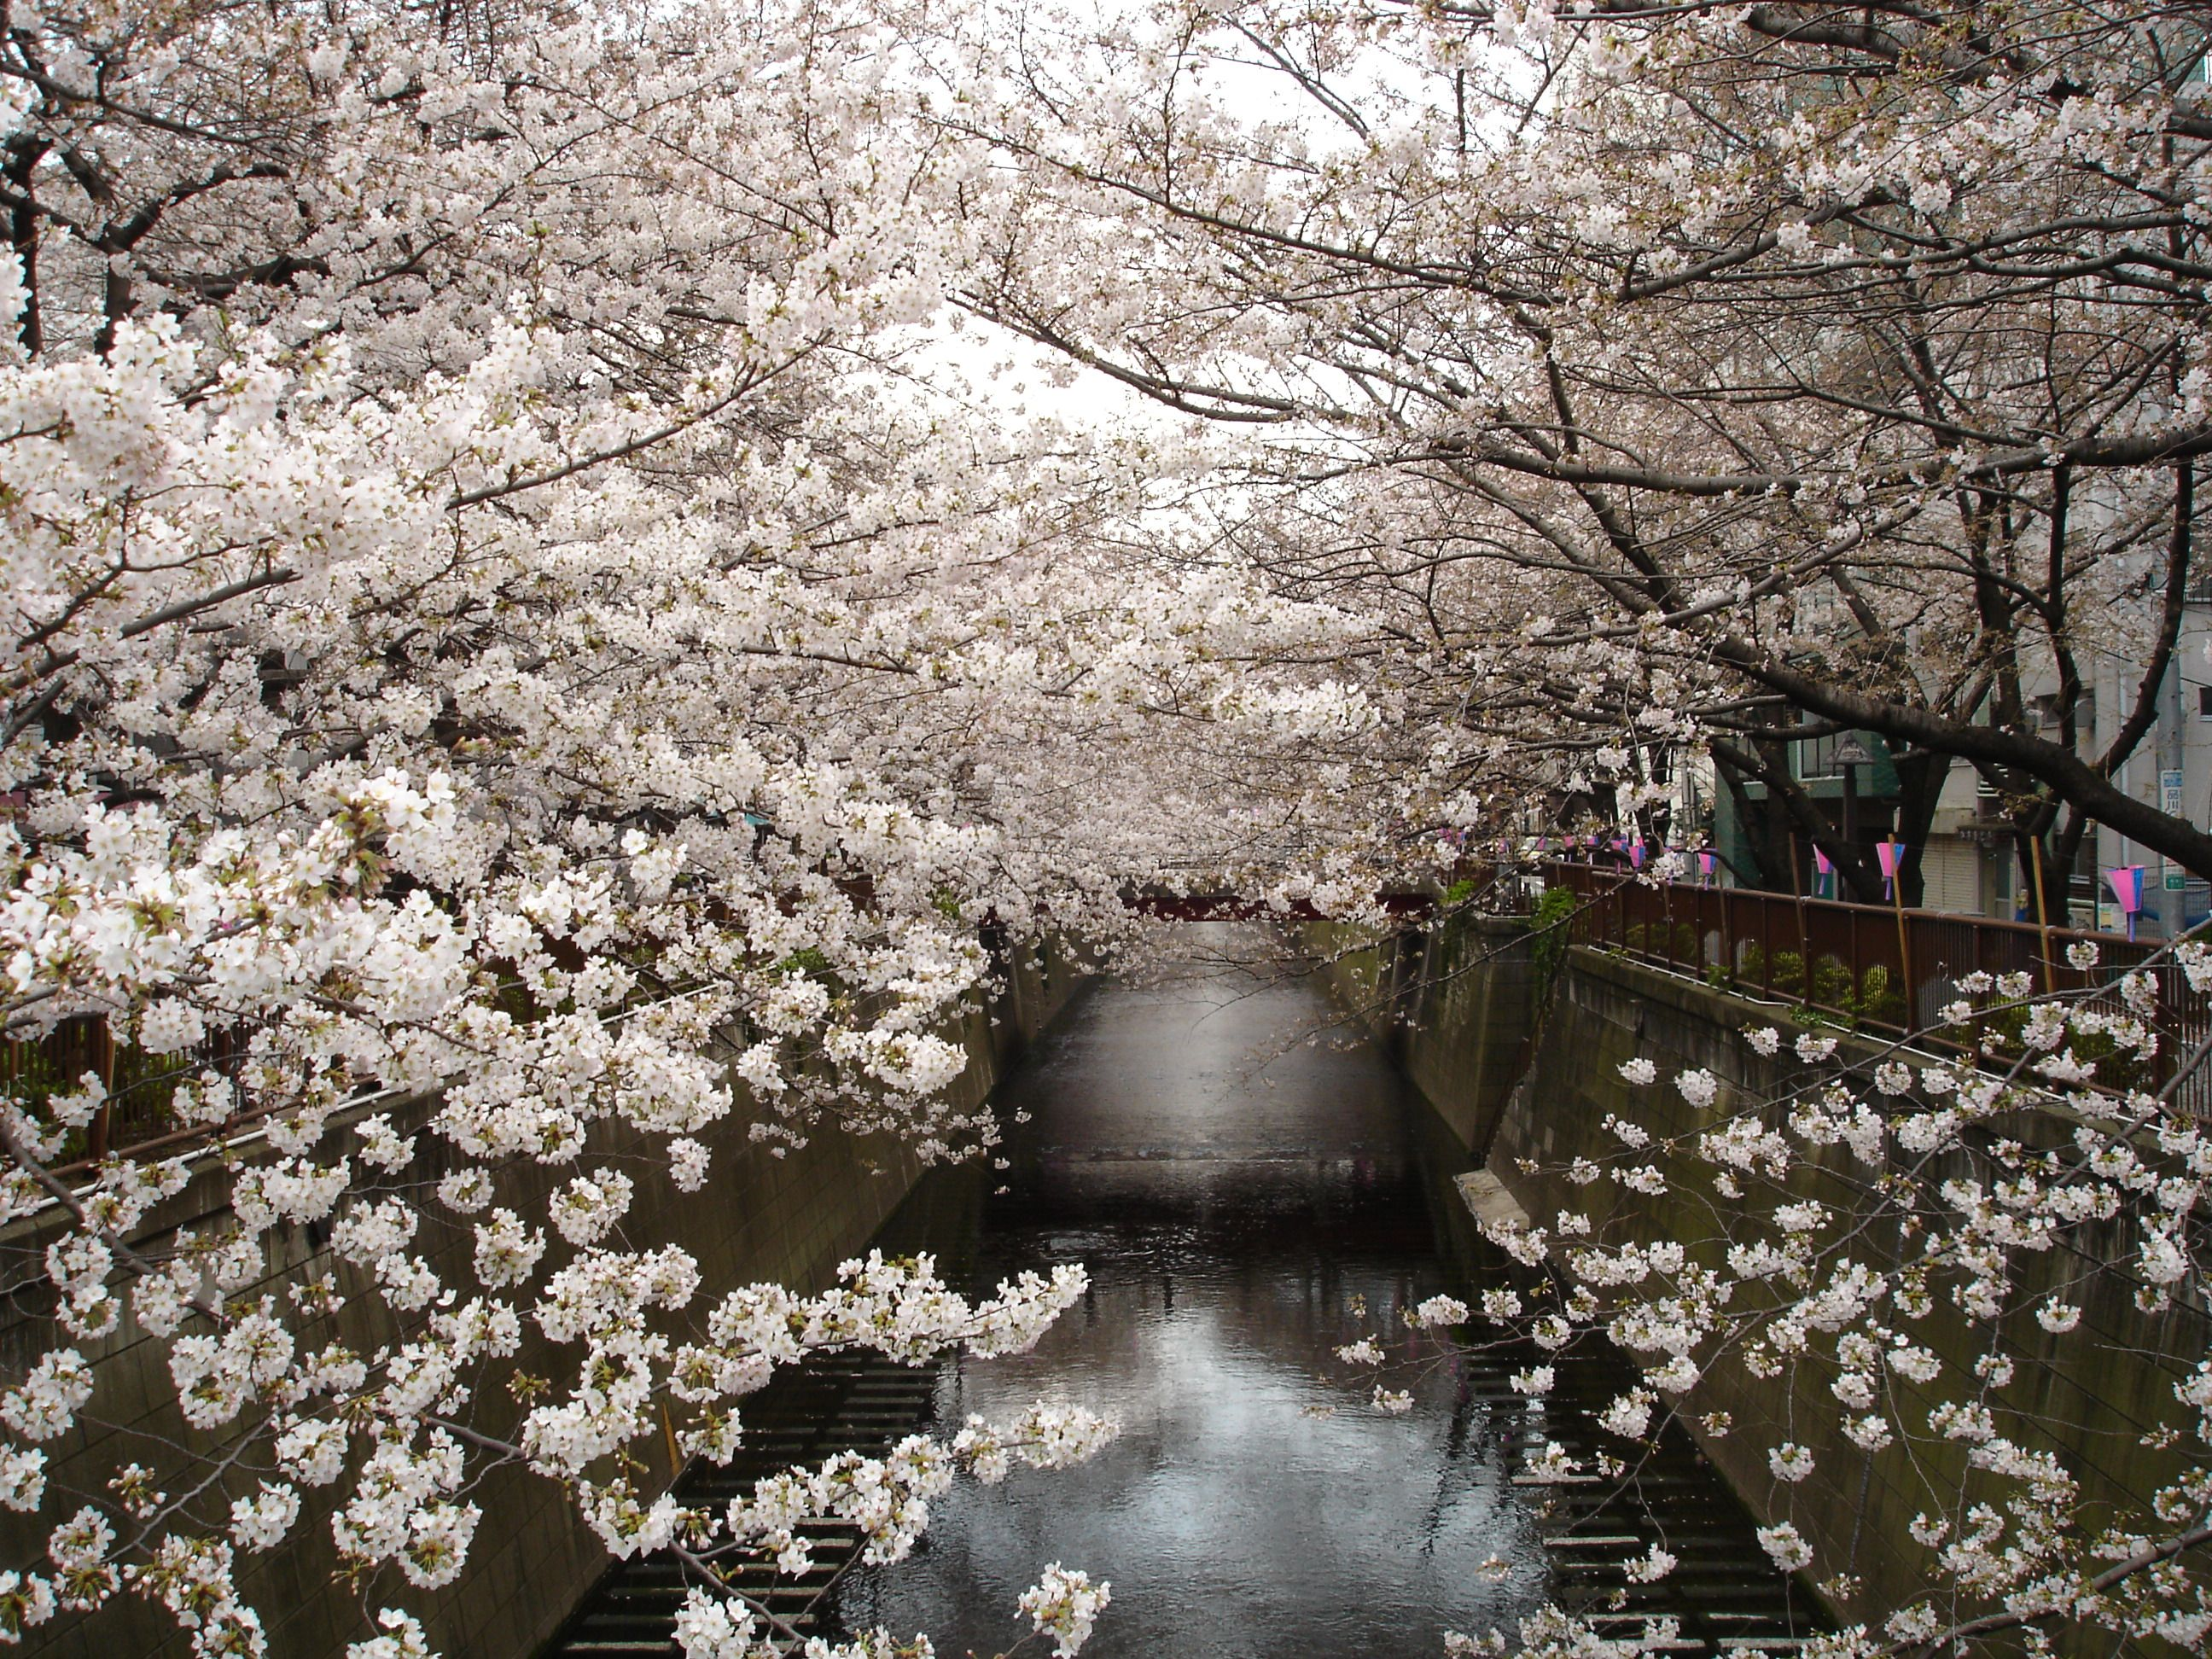 Cherry Blossom Tree Wallpapers Widescreen For Desktop x px . KB